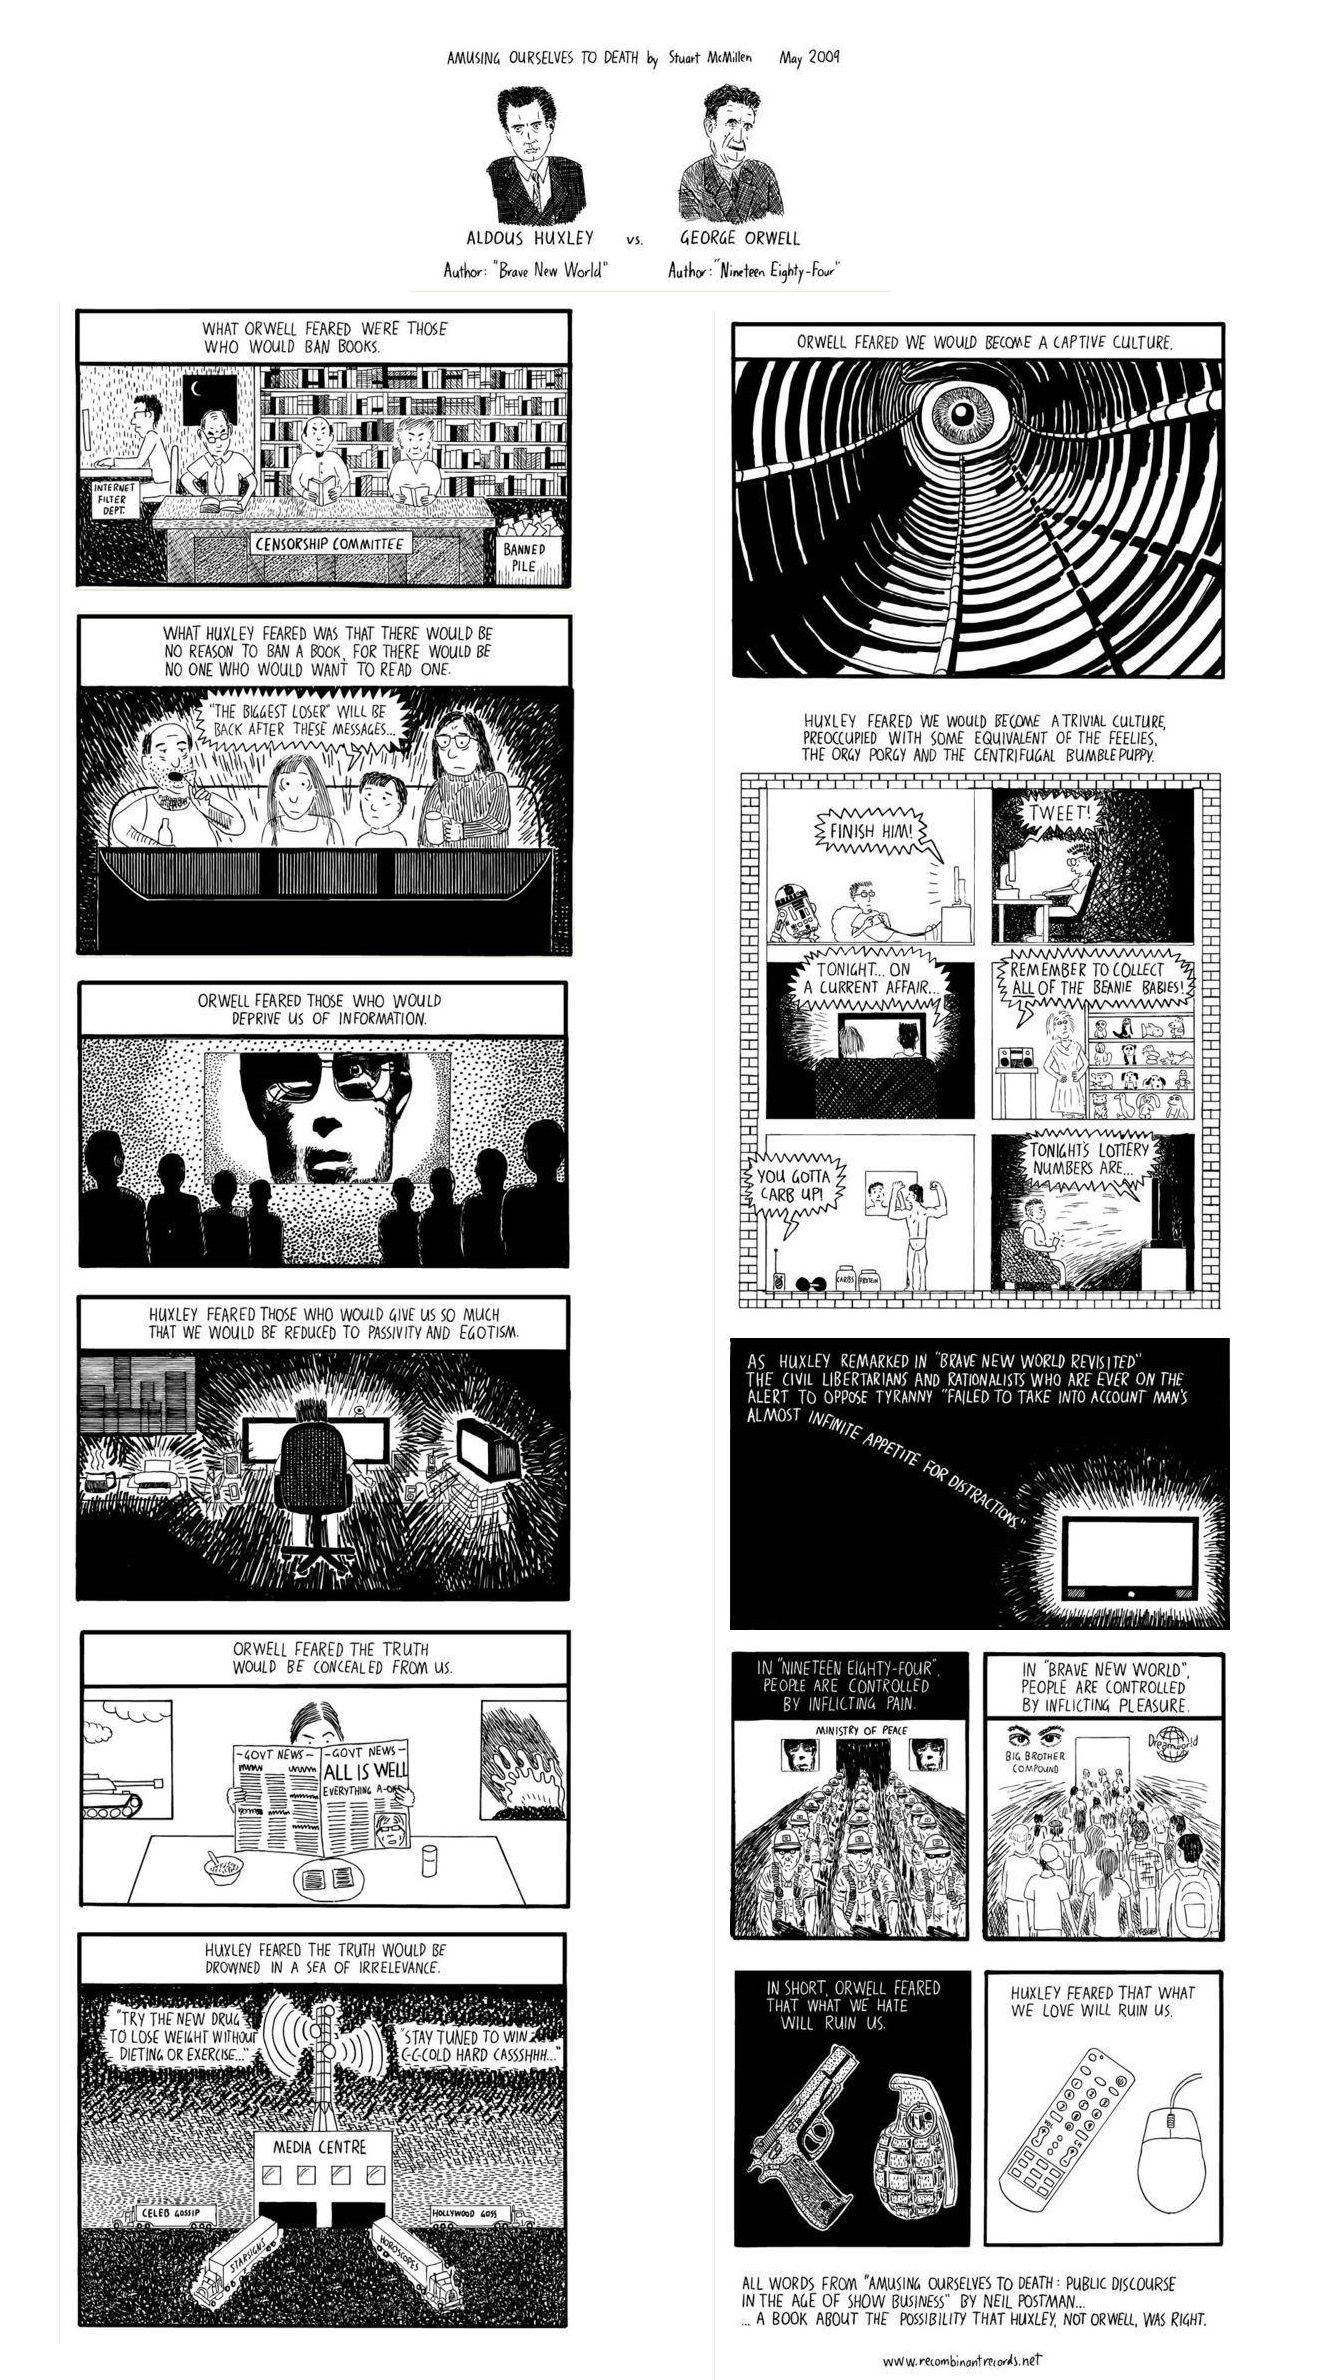 depiction of utopi in brave new world Brave new world is a bitterly funny and humorously tragic dystopian novel in which aldous huxley satirizes modern civilization's because it is entertaining and devastating in its depiction of human nature and modern civilization, especially timely in our own brave new facebook world.